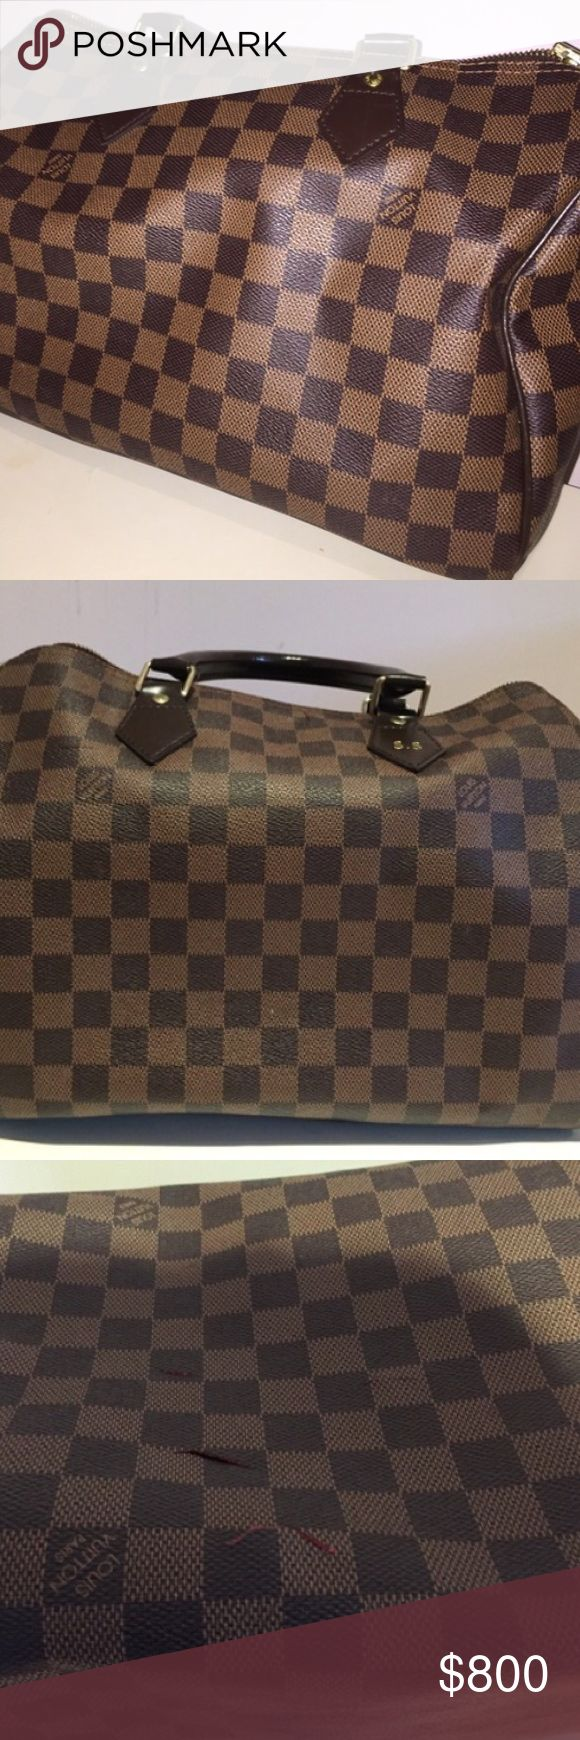 💯Authentic Louis Vuitton Speedy 35 Checkered Bag GUARANTEED AUTHENTIC. I have the receipt that contains proof of purchase. Comes with a dust bag.This item has been preowned and contains rips on the bottom of the bag. See pictures above for more detail. Has Golden color metallic pieces -Rounded handles and trimmings in natural cowhide leather -Lockable double-zipped closure -Interior pocket -D-ring for keys and accessories -Soft textile lining Louis Vuitton Bags Hobos